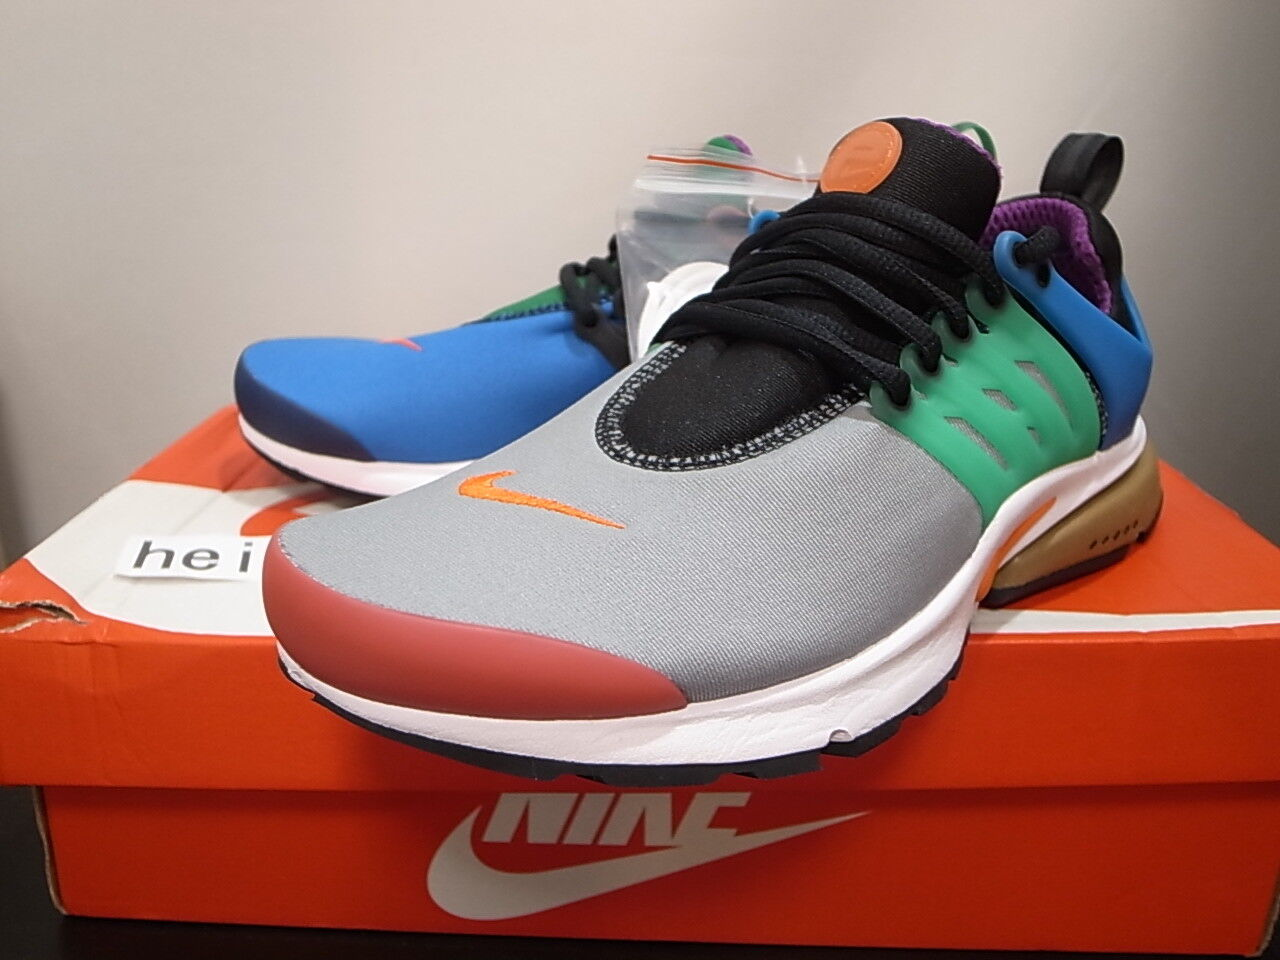 2016 NIKE AIR PRESTO QS GREEDY BEAMS WHAT 8 THE MULTI-COLOR 886043-400 size 8 WHAT 2a7c6d